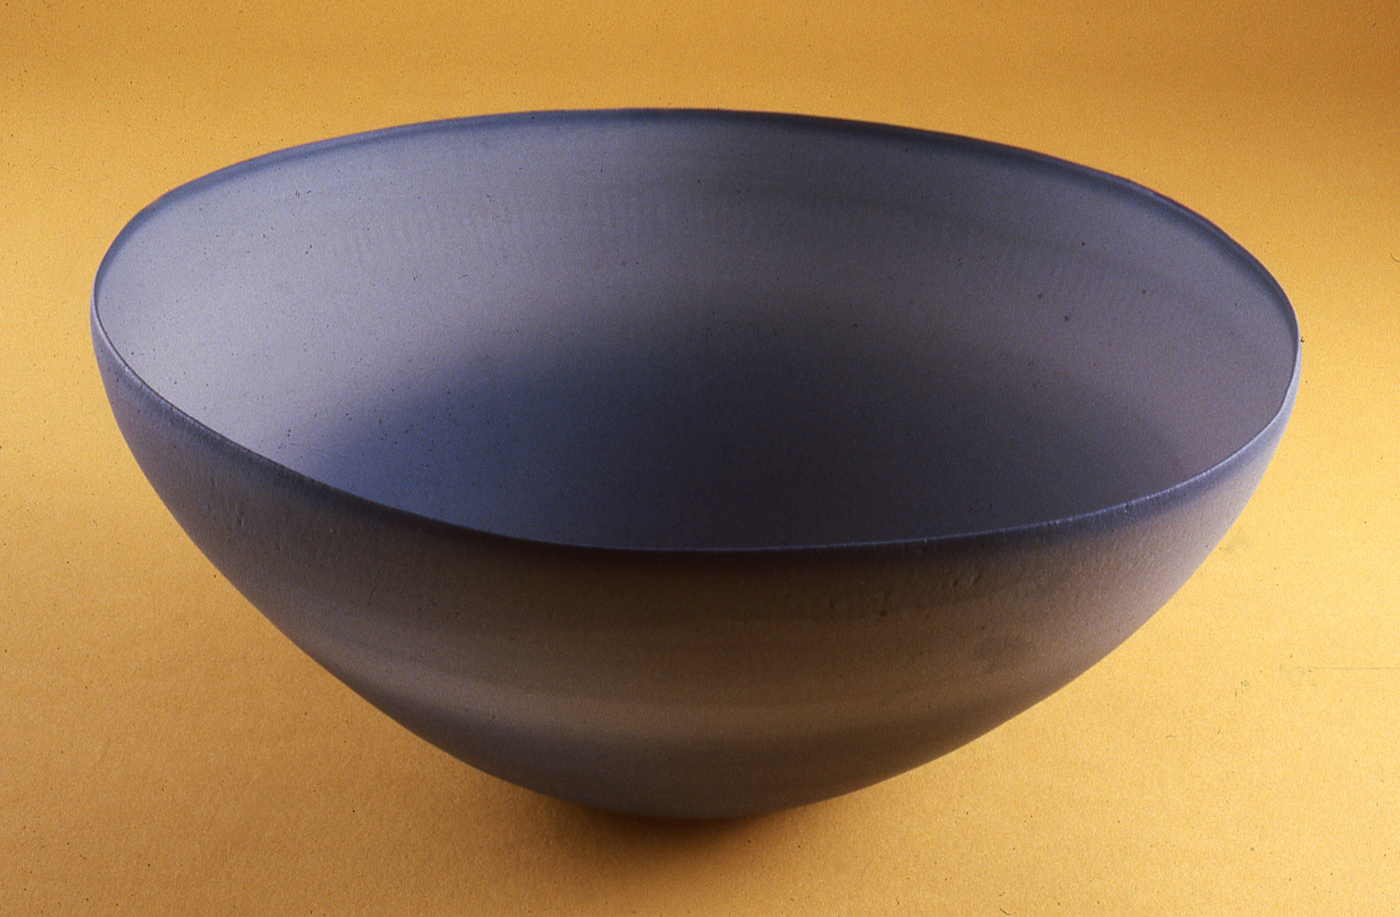 Untitled bowl, 1980